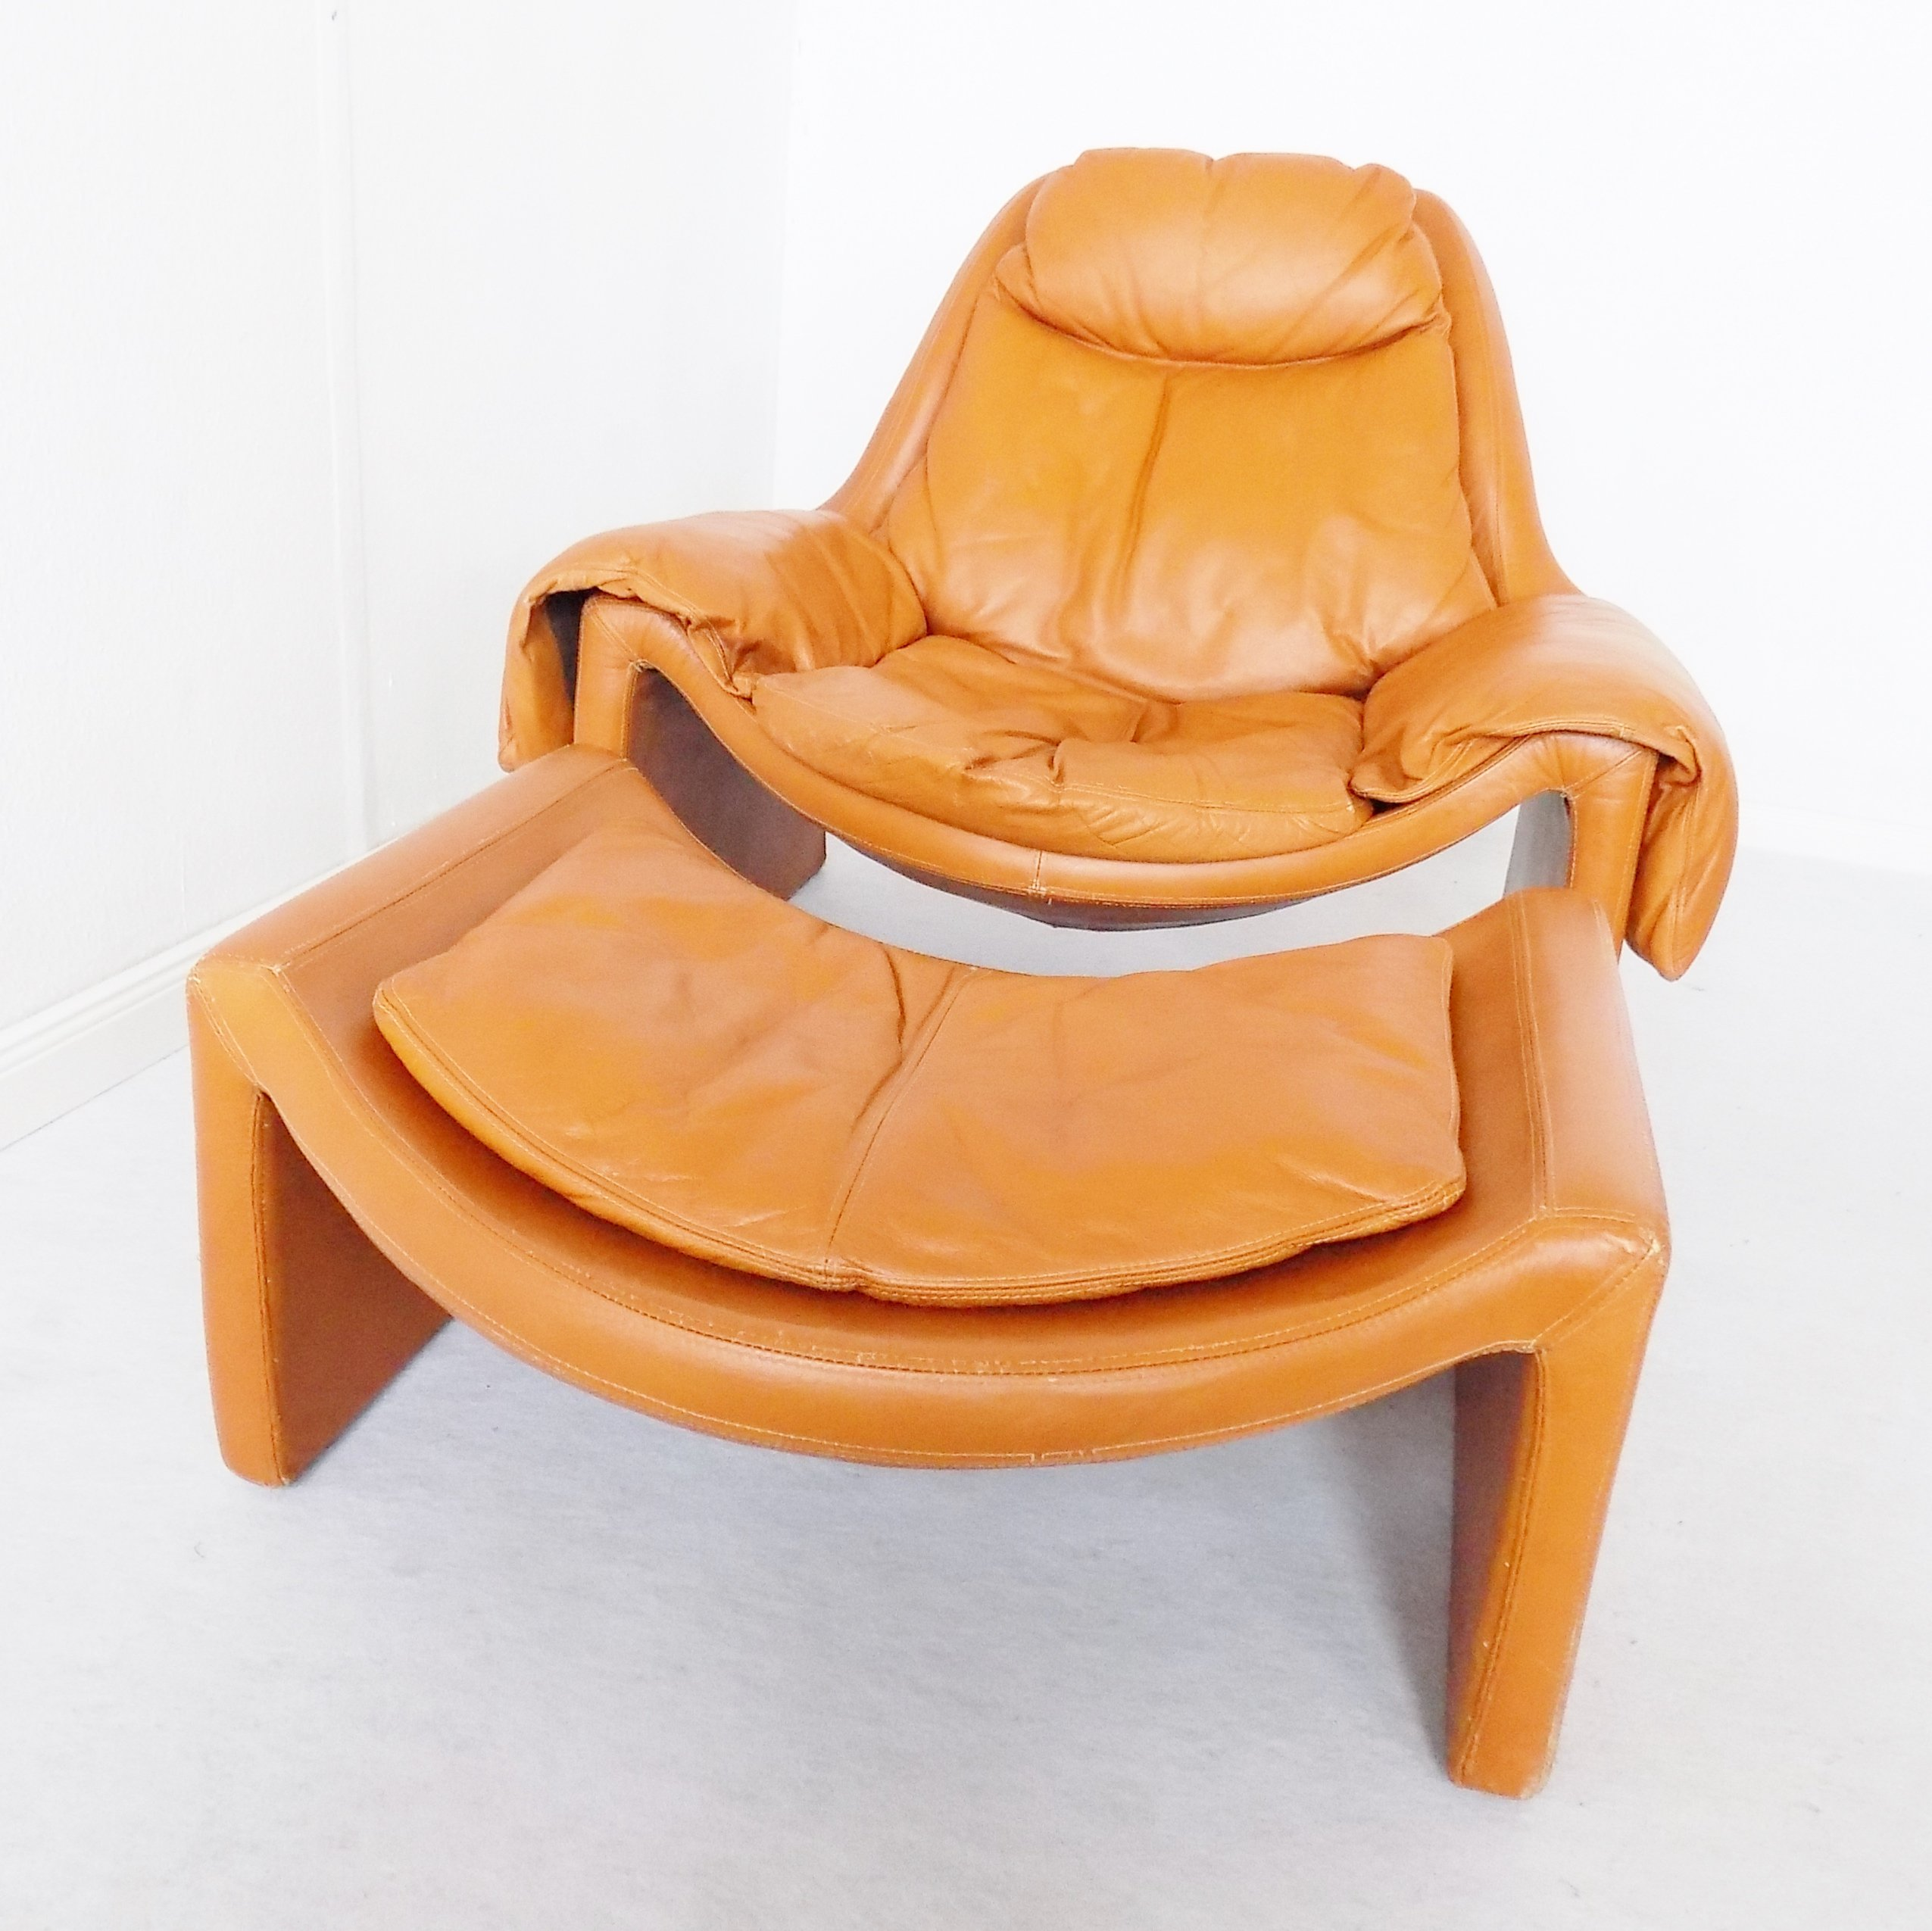 Stupendous Caramel Leather Saporiti P 60 Lounge Chair With Ottoman By Uwap Interior Chair Design Uwaporg